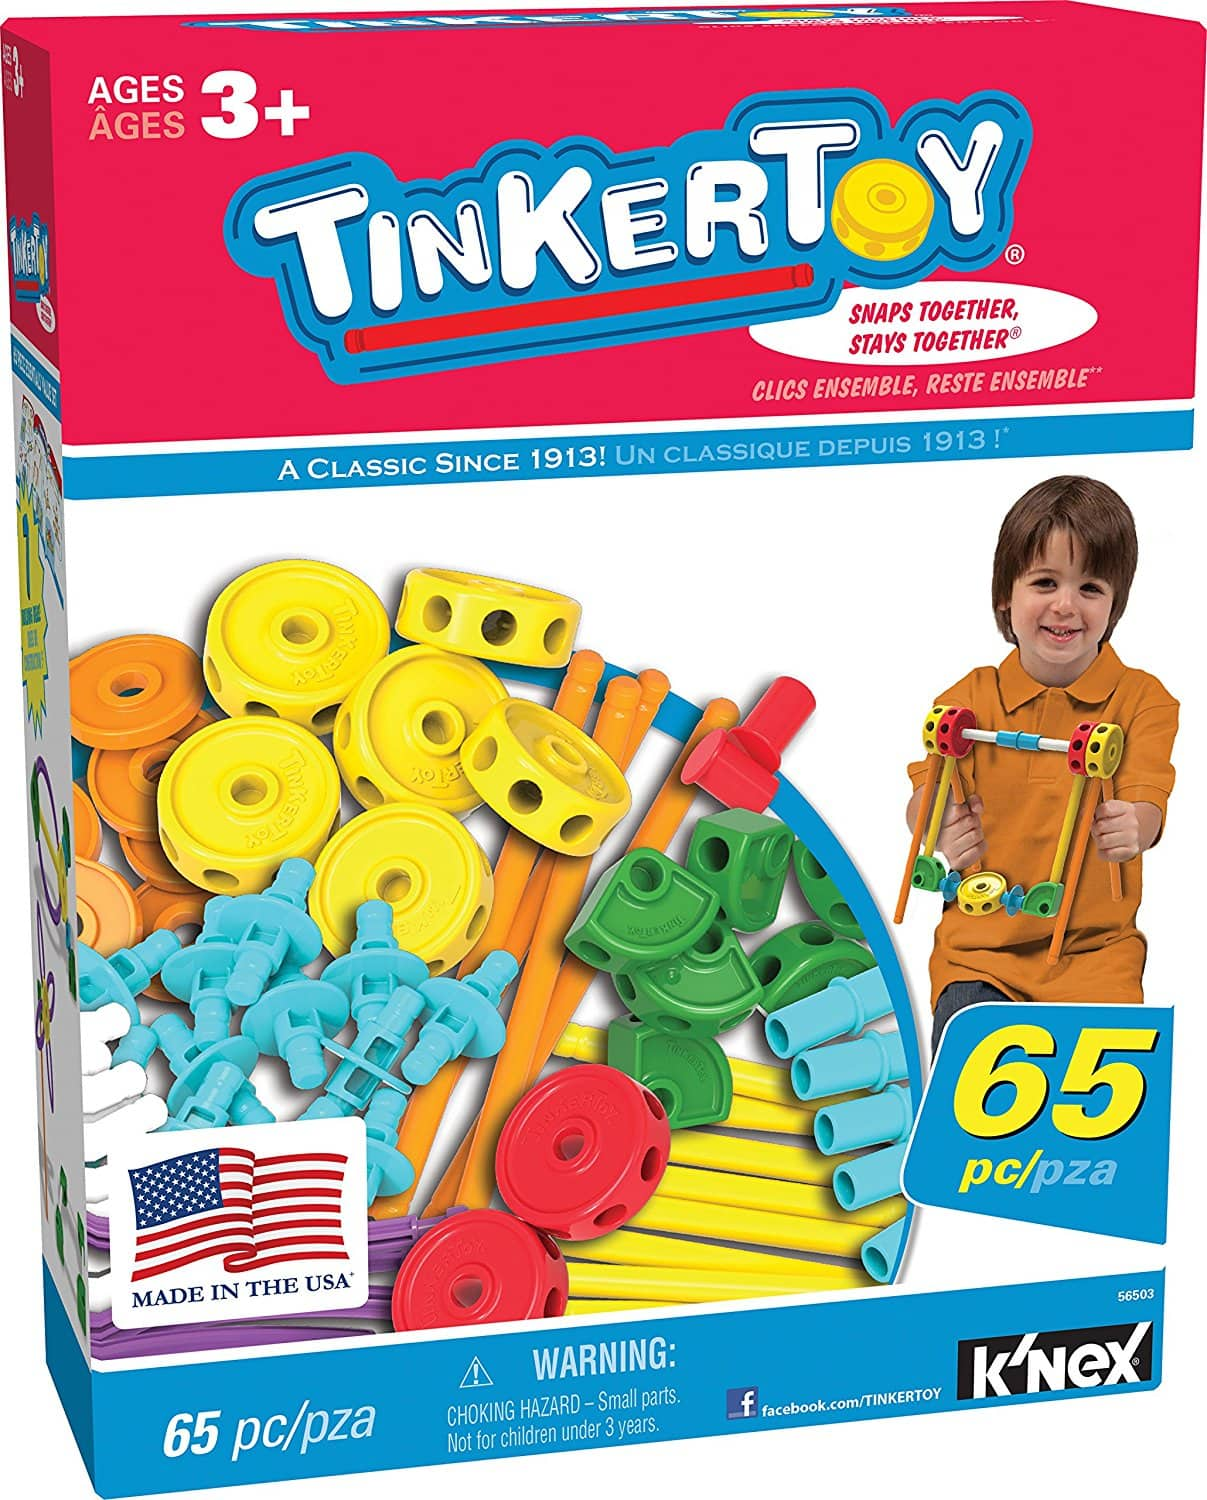 TINKERTOY 65 Piece Essentials Value Set Prime $10.82